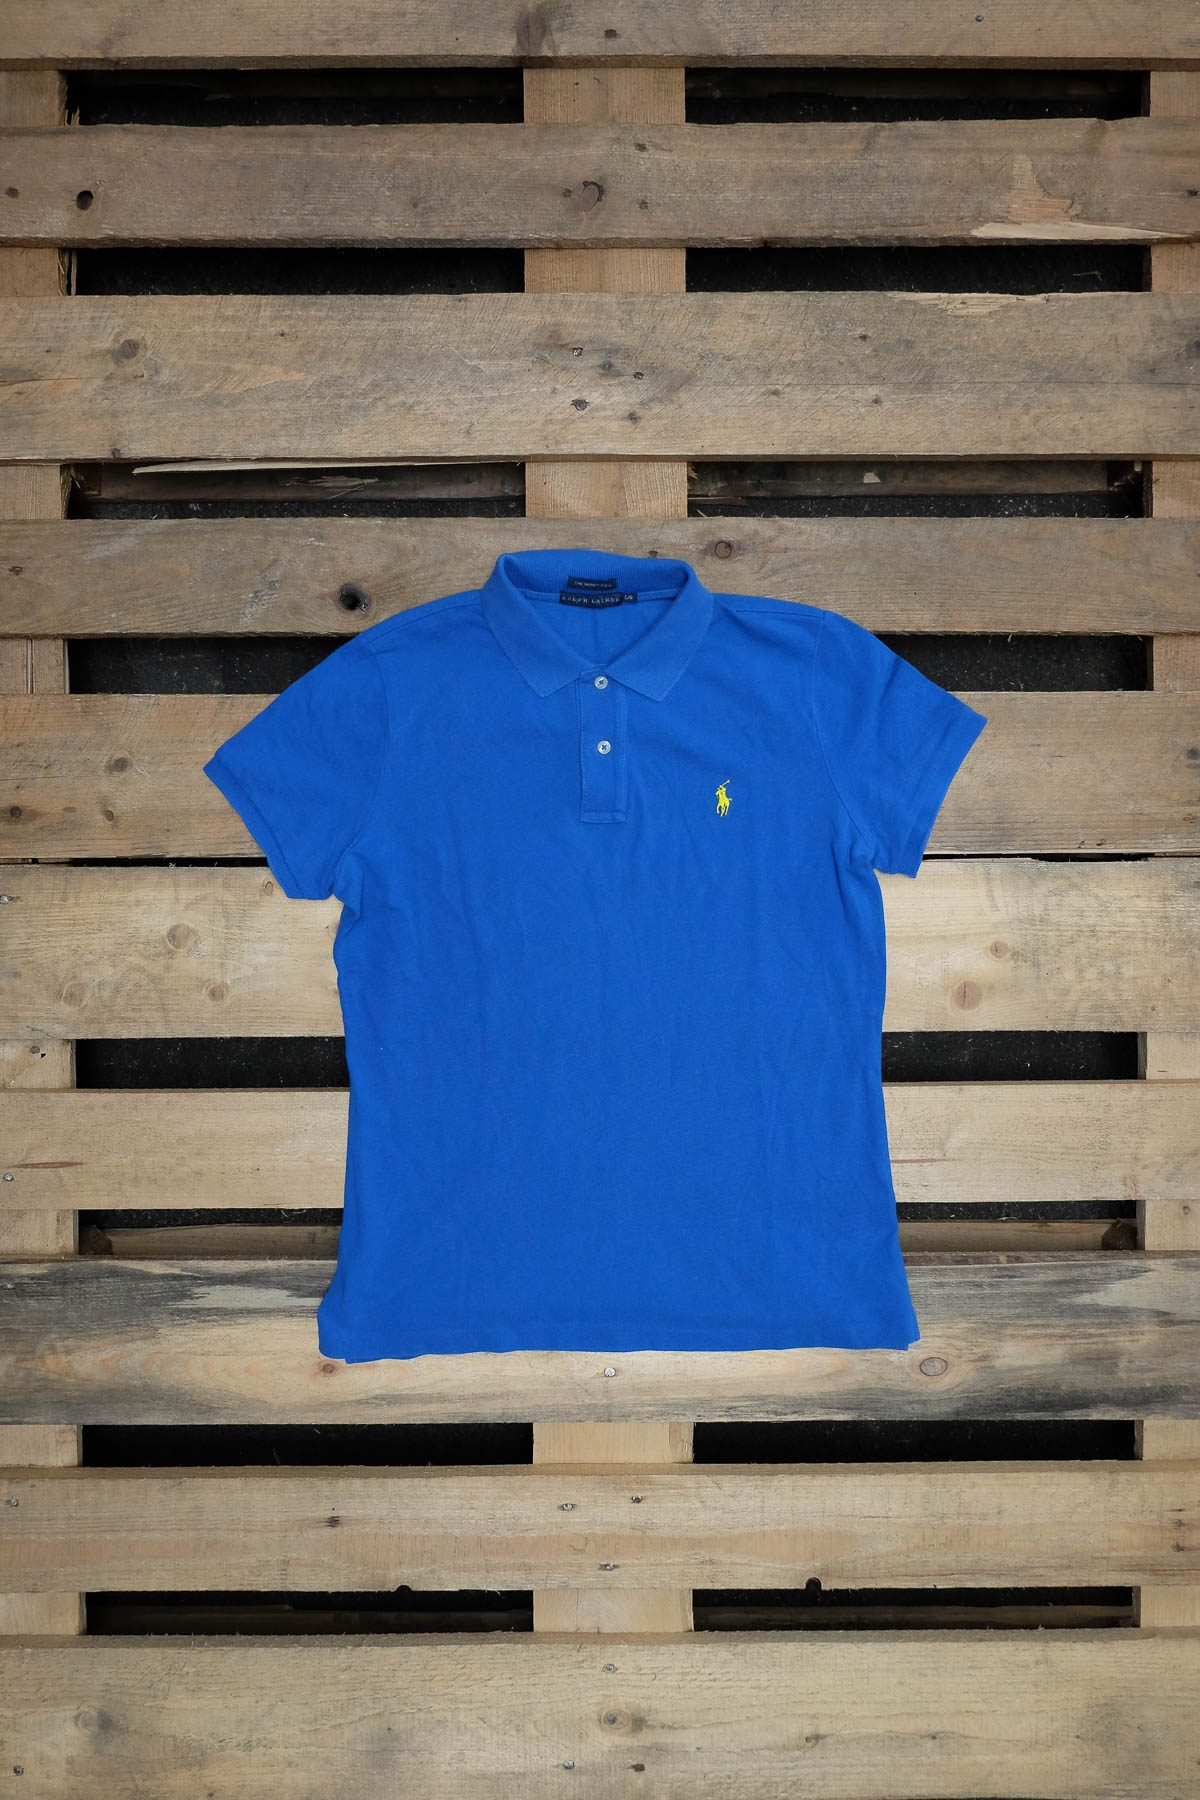 Ralph Lauren T-SHIRT POLO VINTAGE Blue